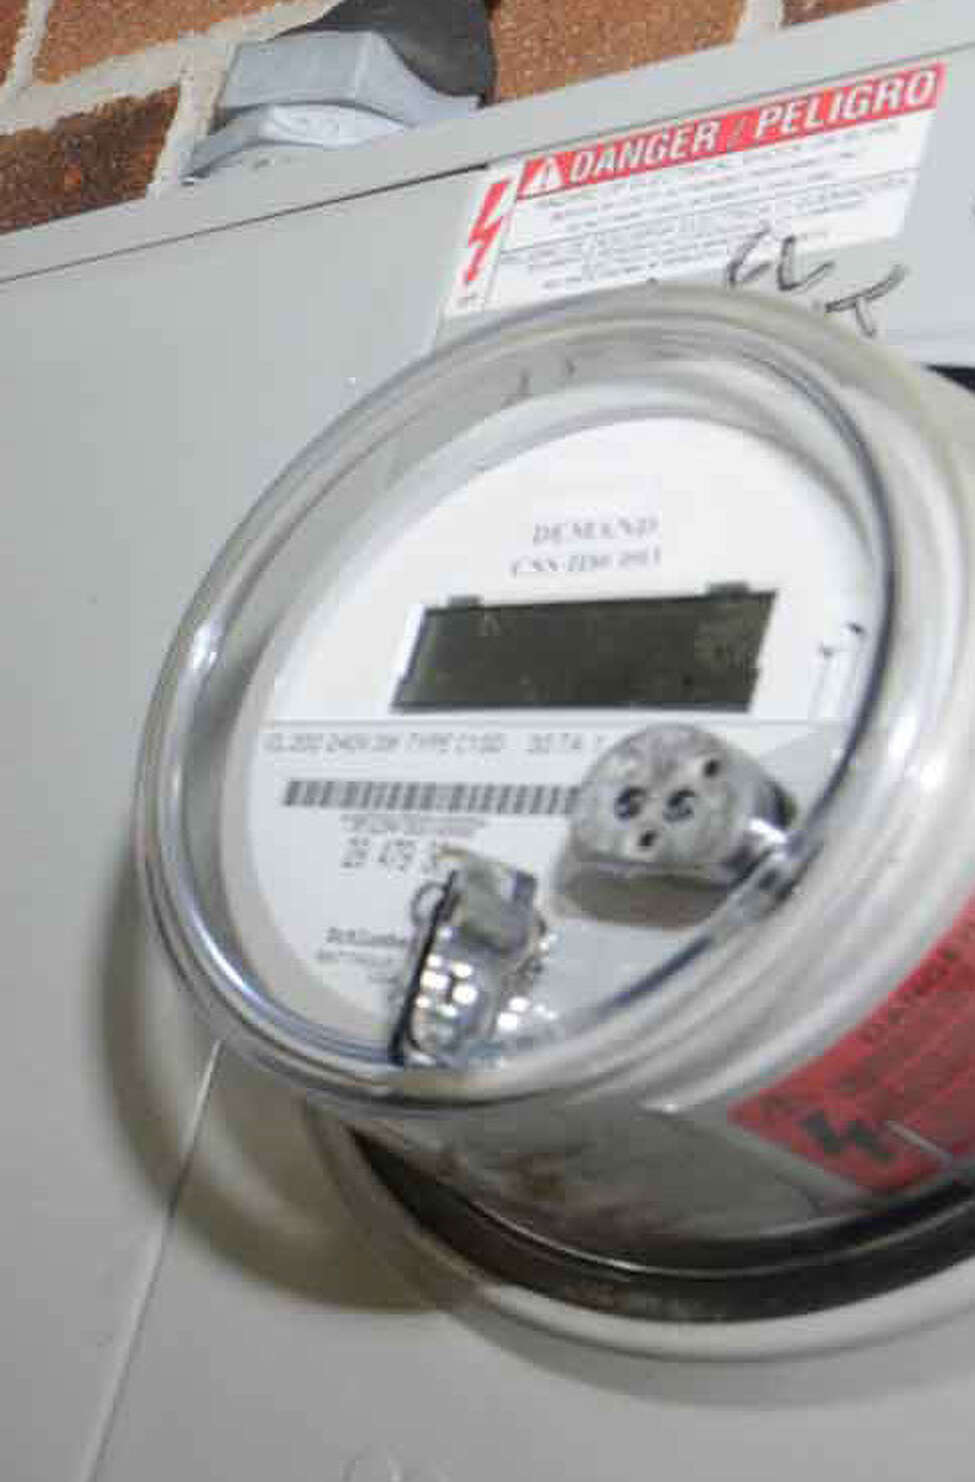 Michael Connelly, exec. dir, Northeast Associates in Rehabilitation shows the electric meters that have been being attributed to the wrong end user in Colonie on Tuesday 9/21/2010.( Michael P. Farrell / Times Union ) ORG XMIT: MER2017092612251803